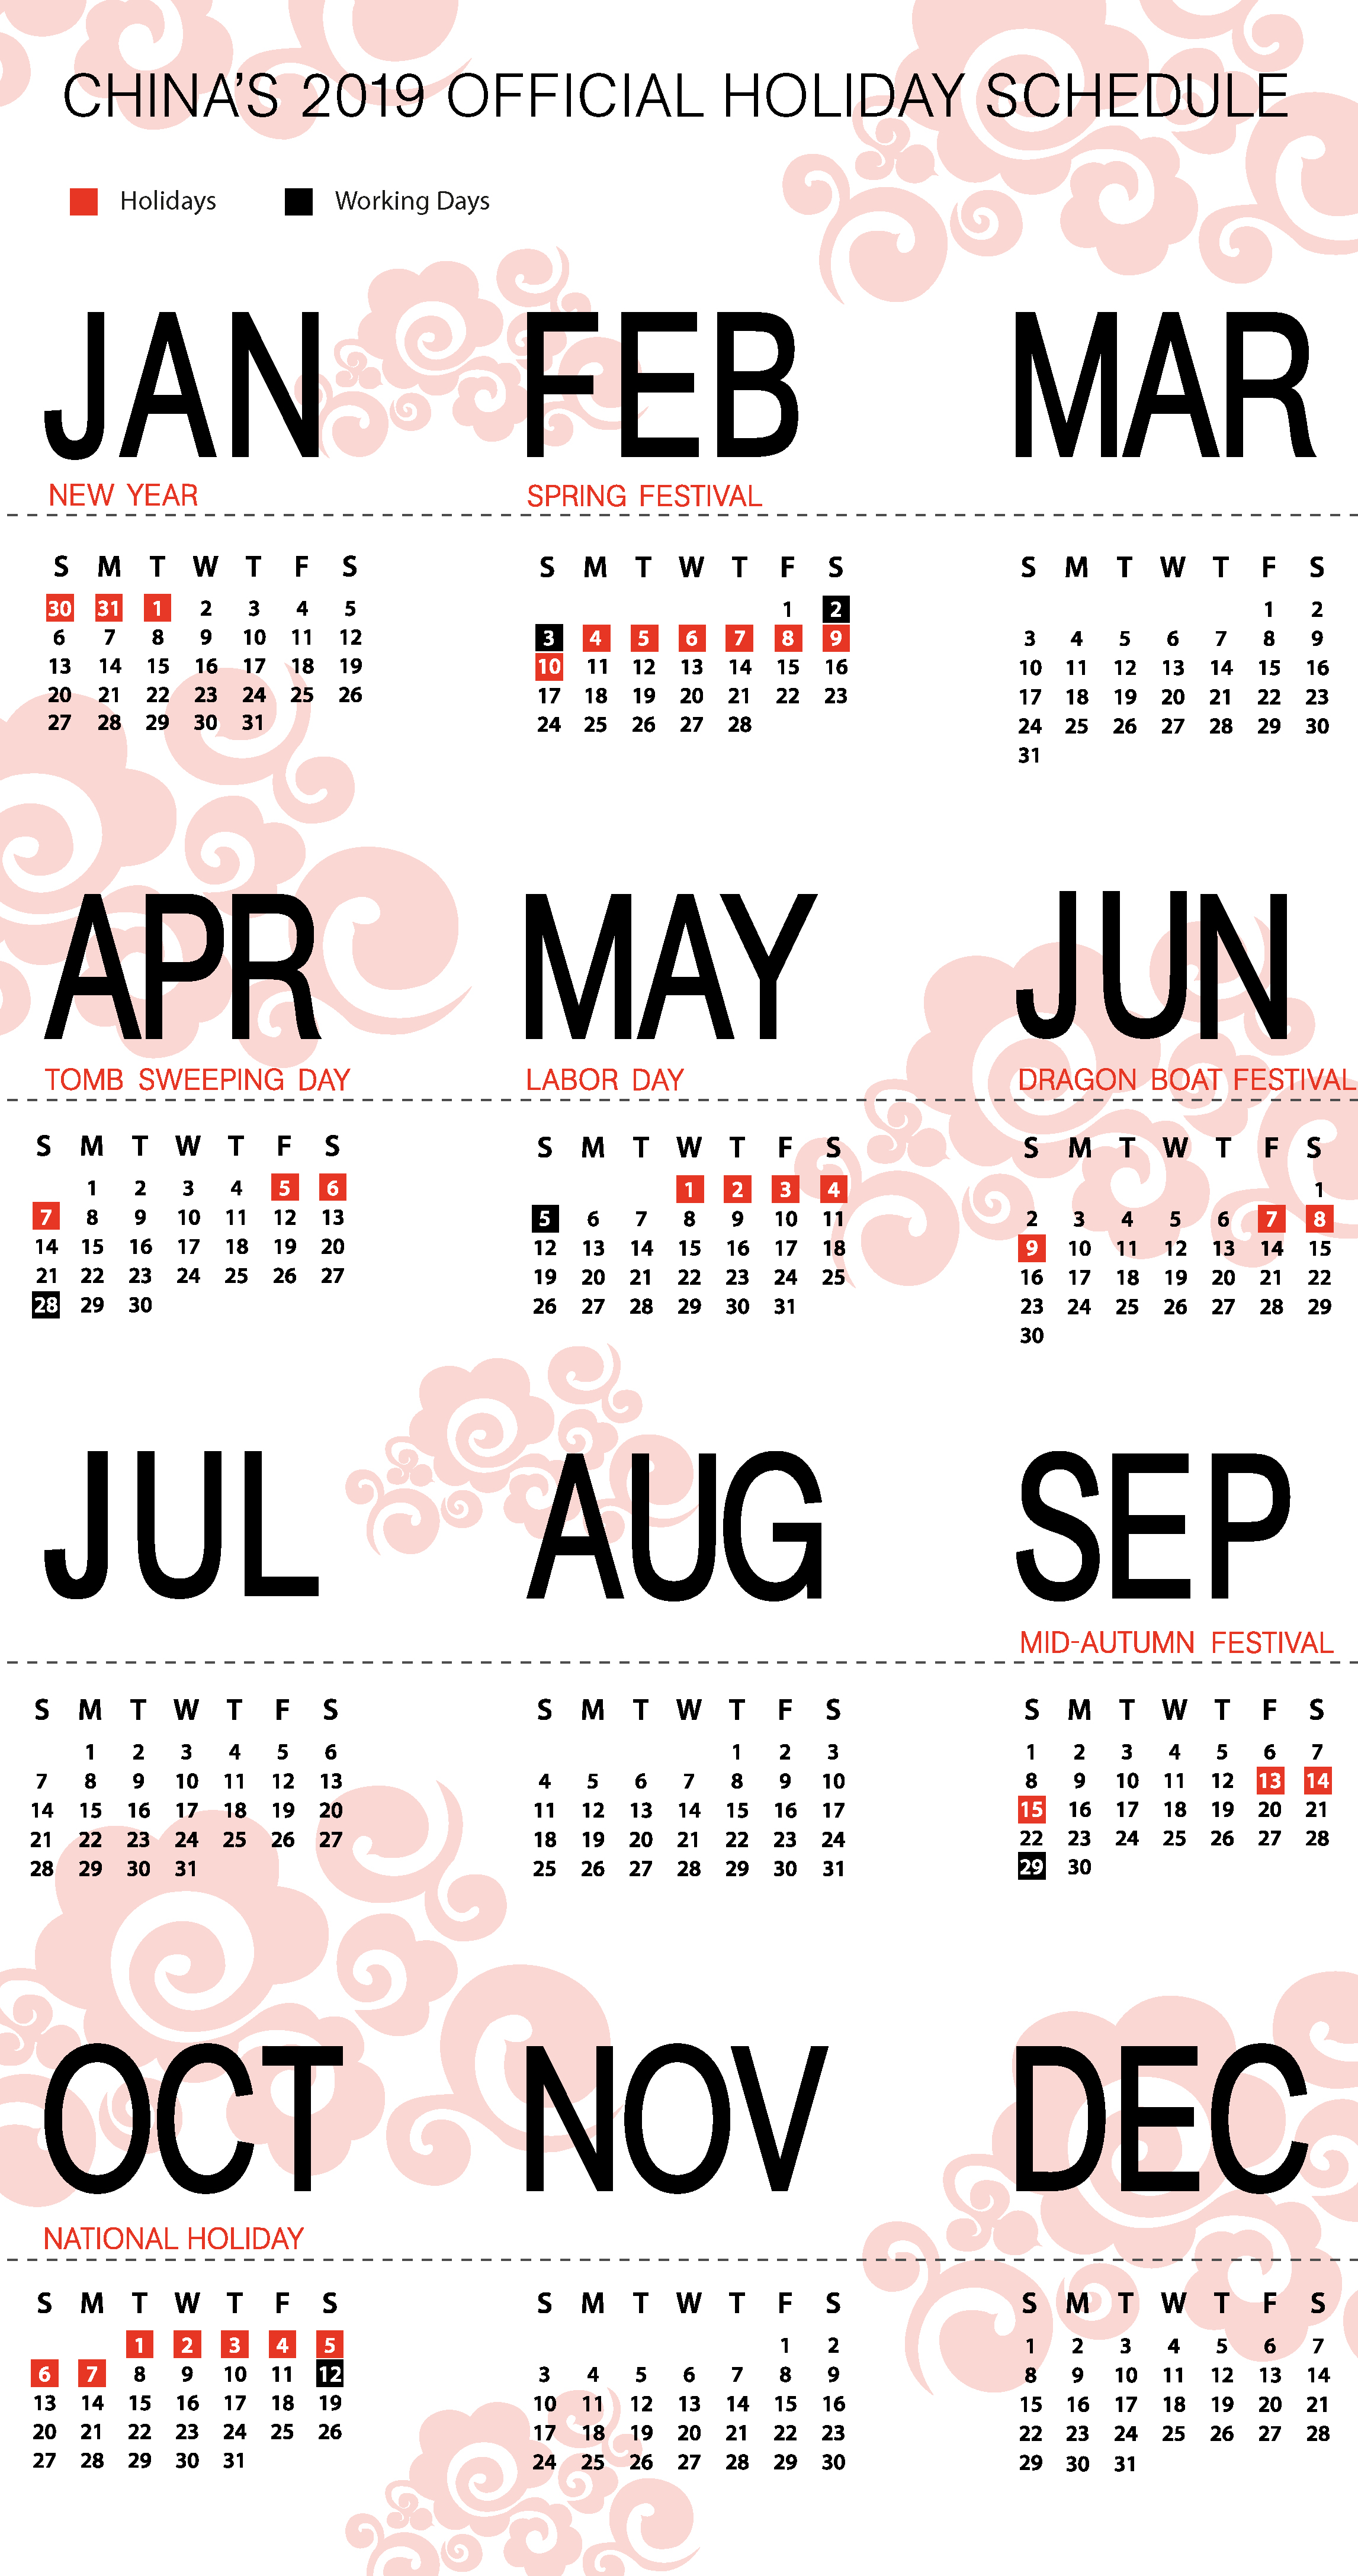 China's 2019 Holiday Schedule: Changes to Labor Day Holiday